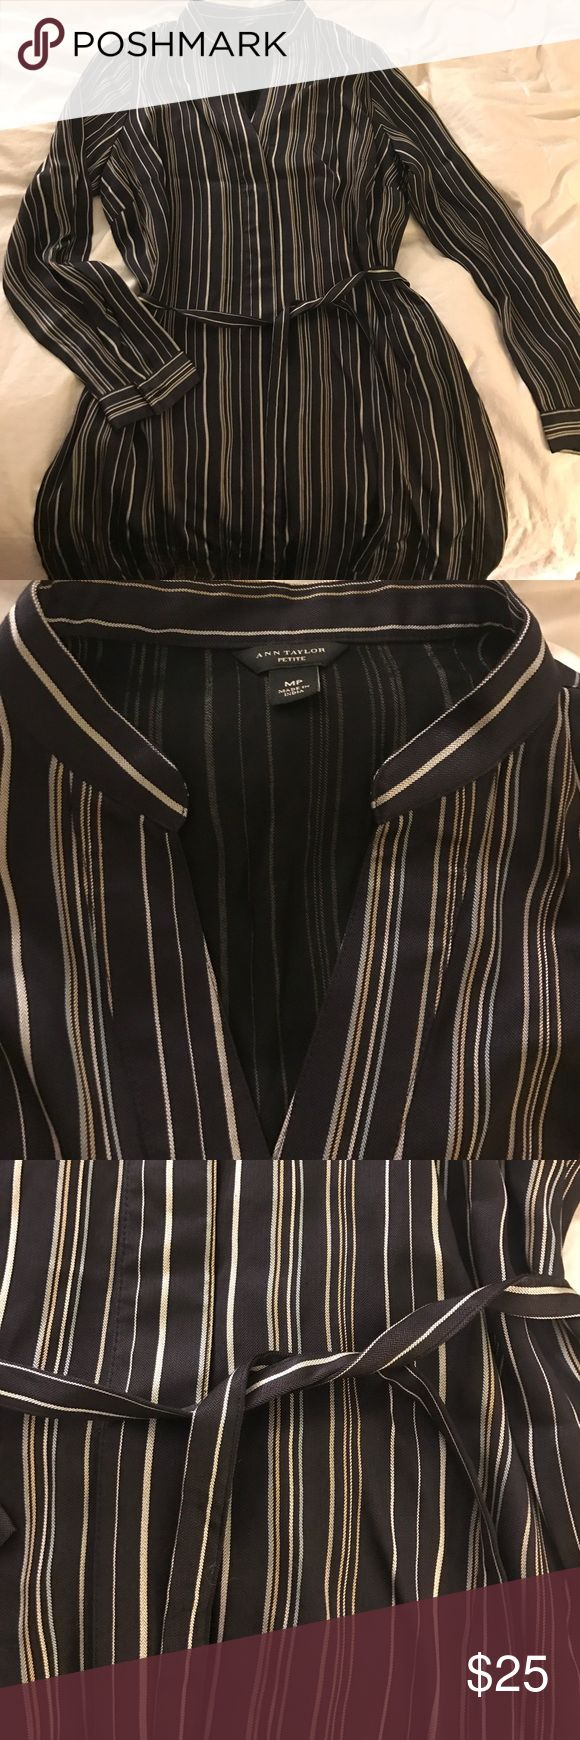 Ann Taylor Petite shirt dress. Size medium Shirt dress. Navy blue with white, yellow, and light blue stripes. Ties at the waist. Size medium. NWOT Ann Taylor Dresses Long Sleeve